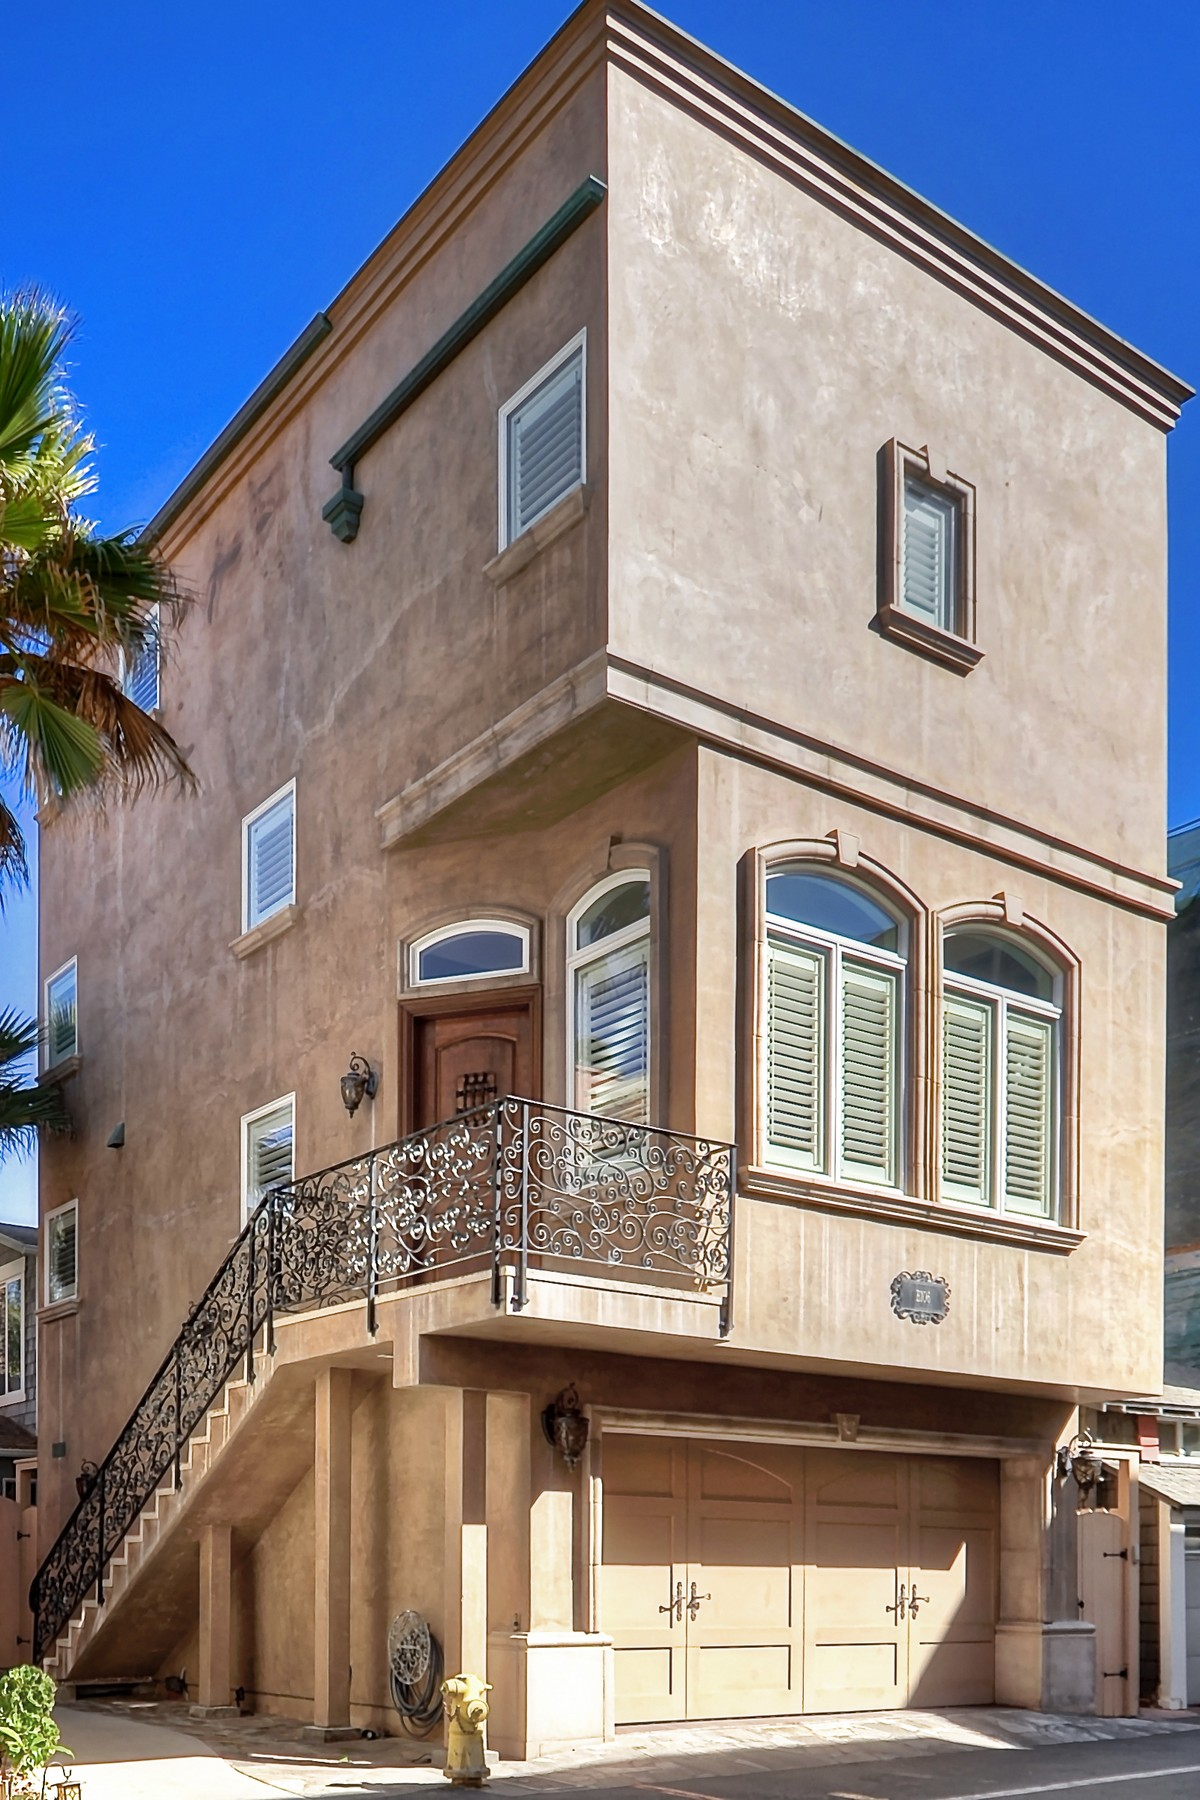 Maison unifamiliale pour l Vente à 106 Surfside Ave. #B Surfside, Californie, 90740 États-Unis